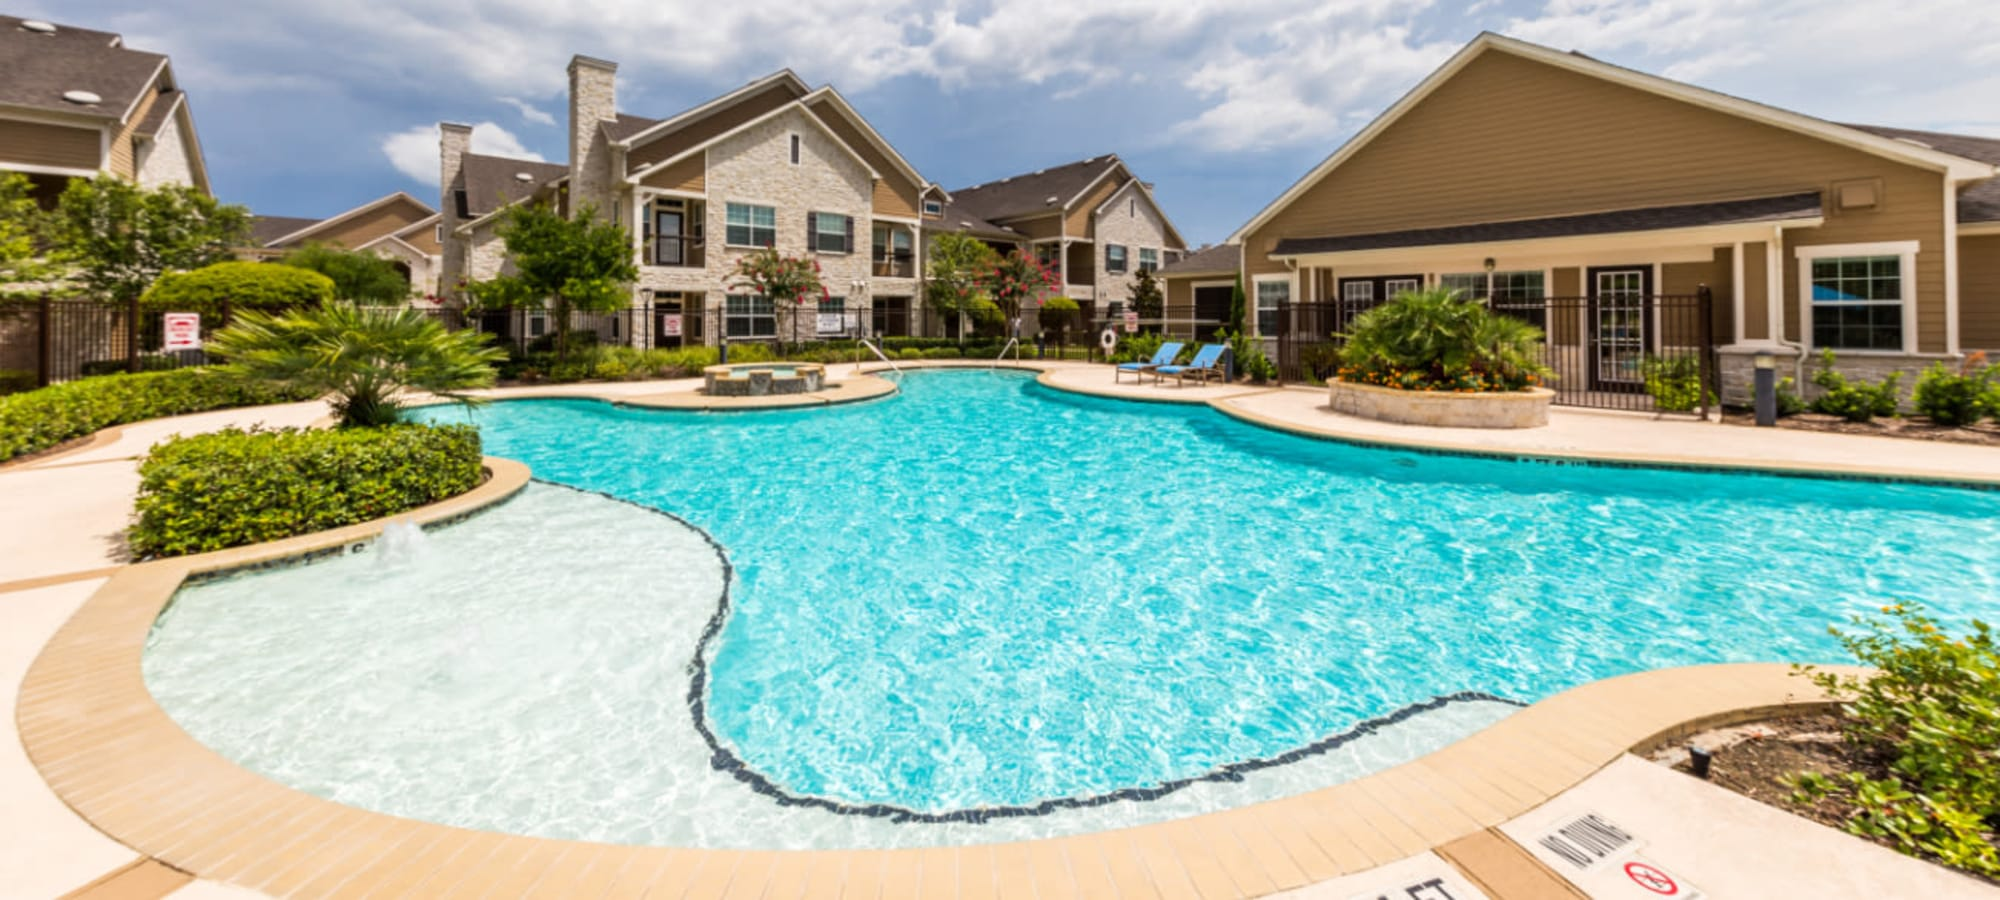 Schedule a tour of Marquis at Cinco Ranch in Katy, Texas